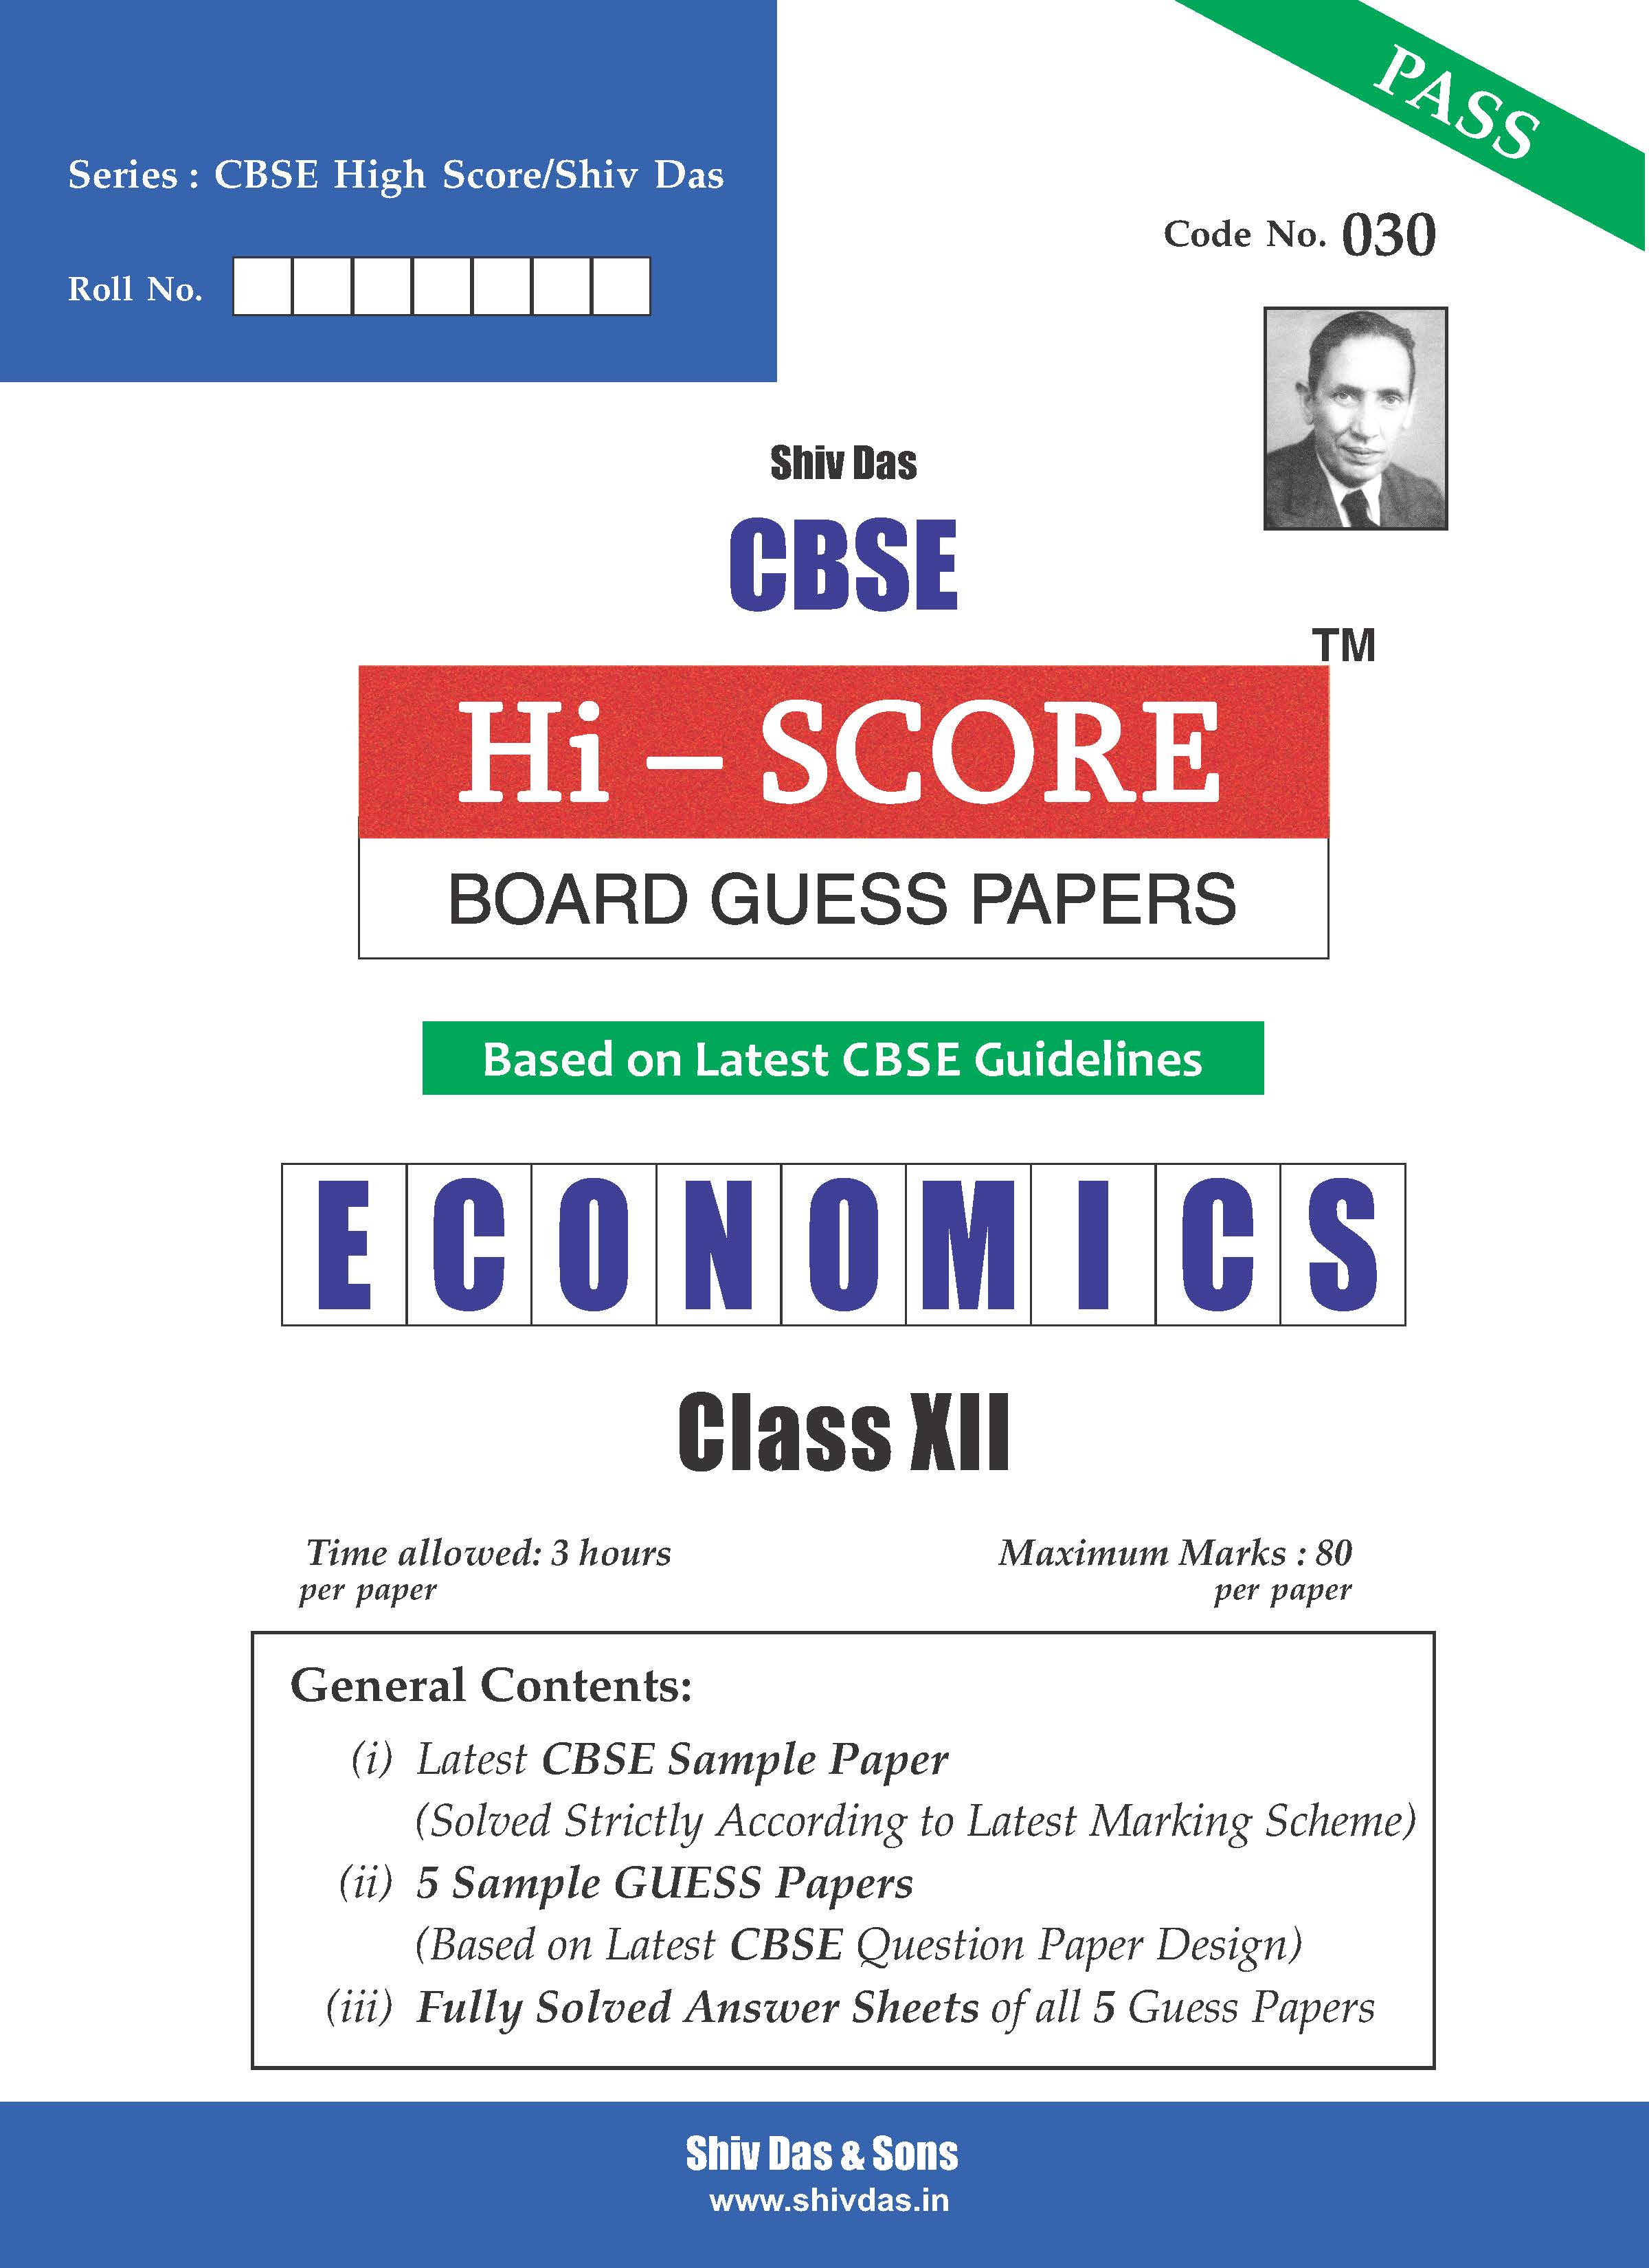 CBSE Hi Score Board Guess Papers for Class 12 Economics